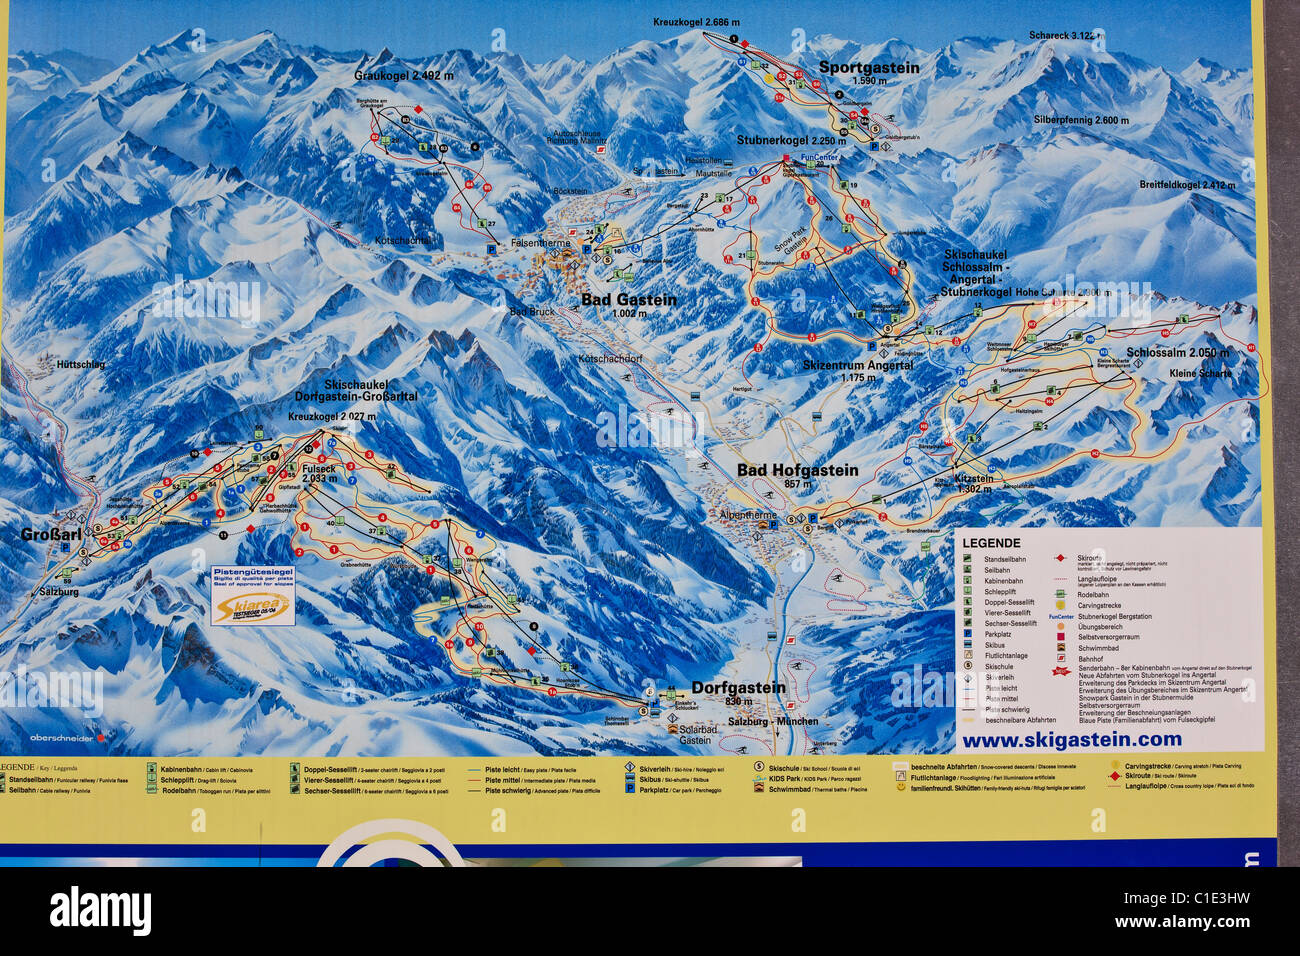 ski slope map stockfotos ski slope map bilder alamy. Black Bedroom Furniture Sets. Home Design Ideas